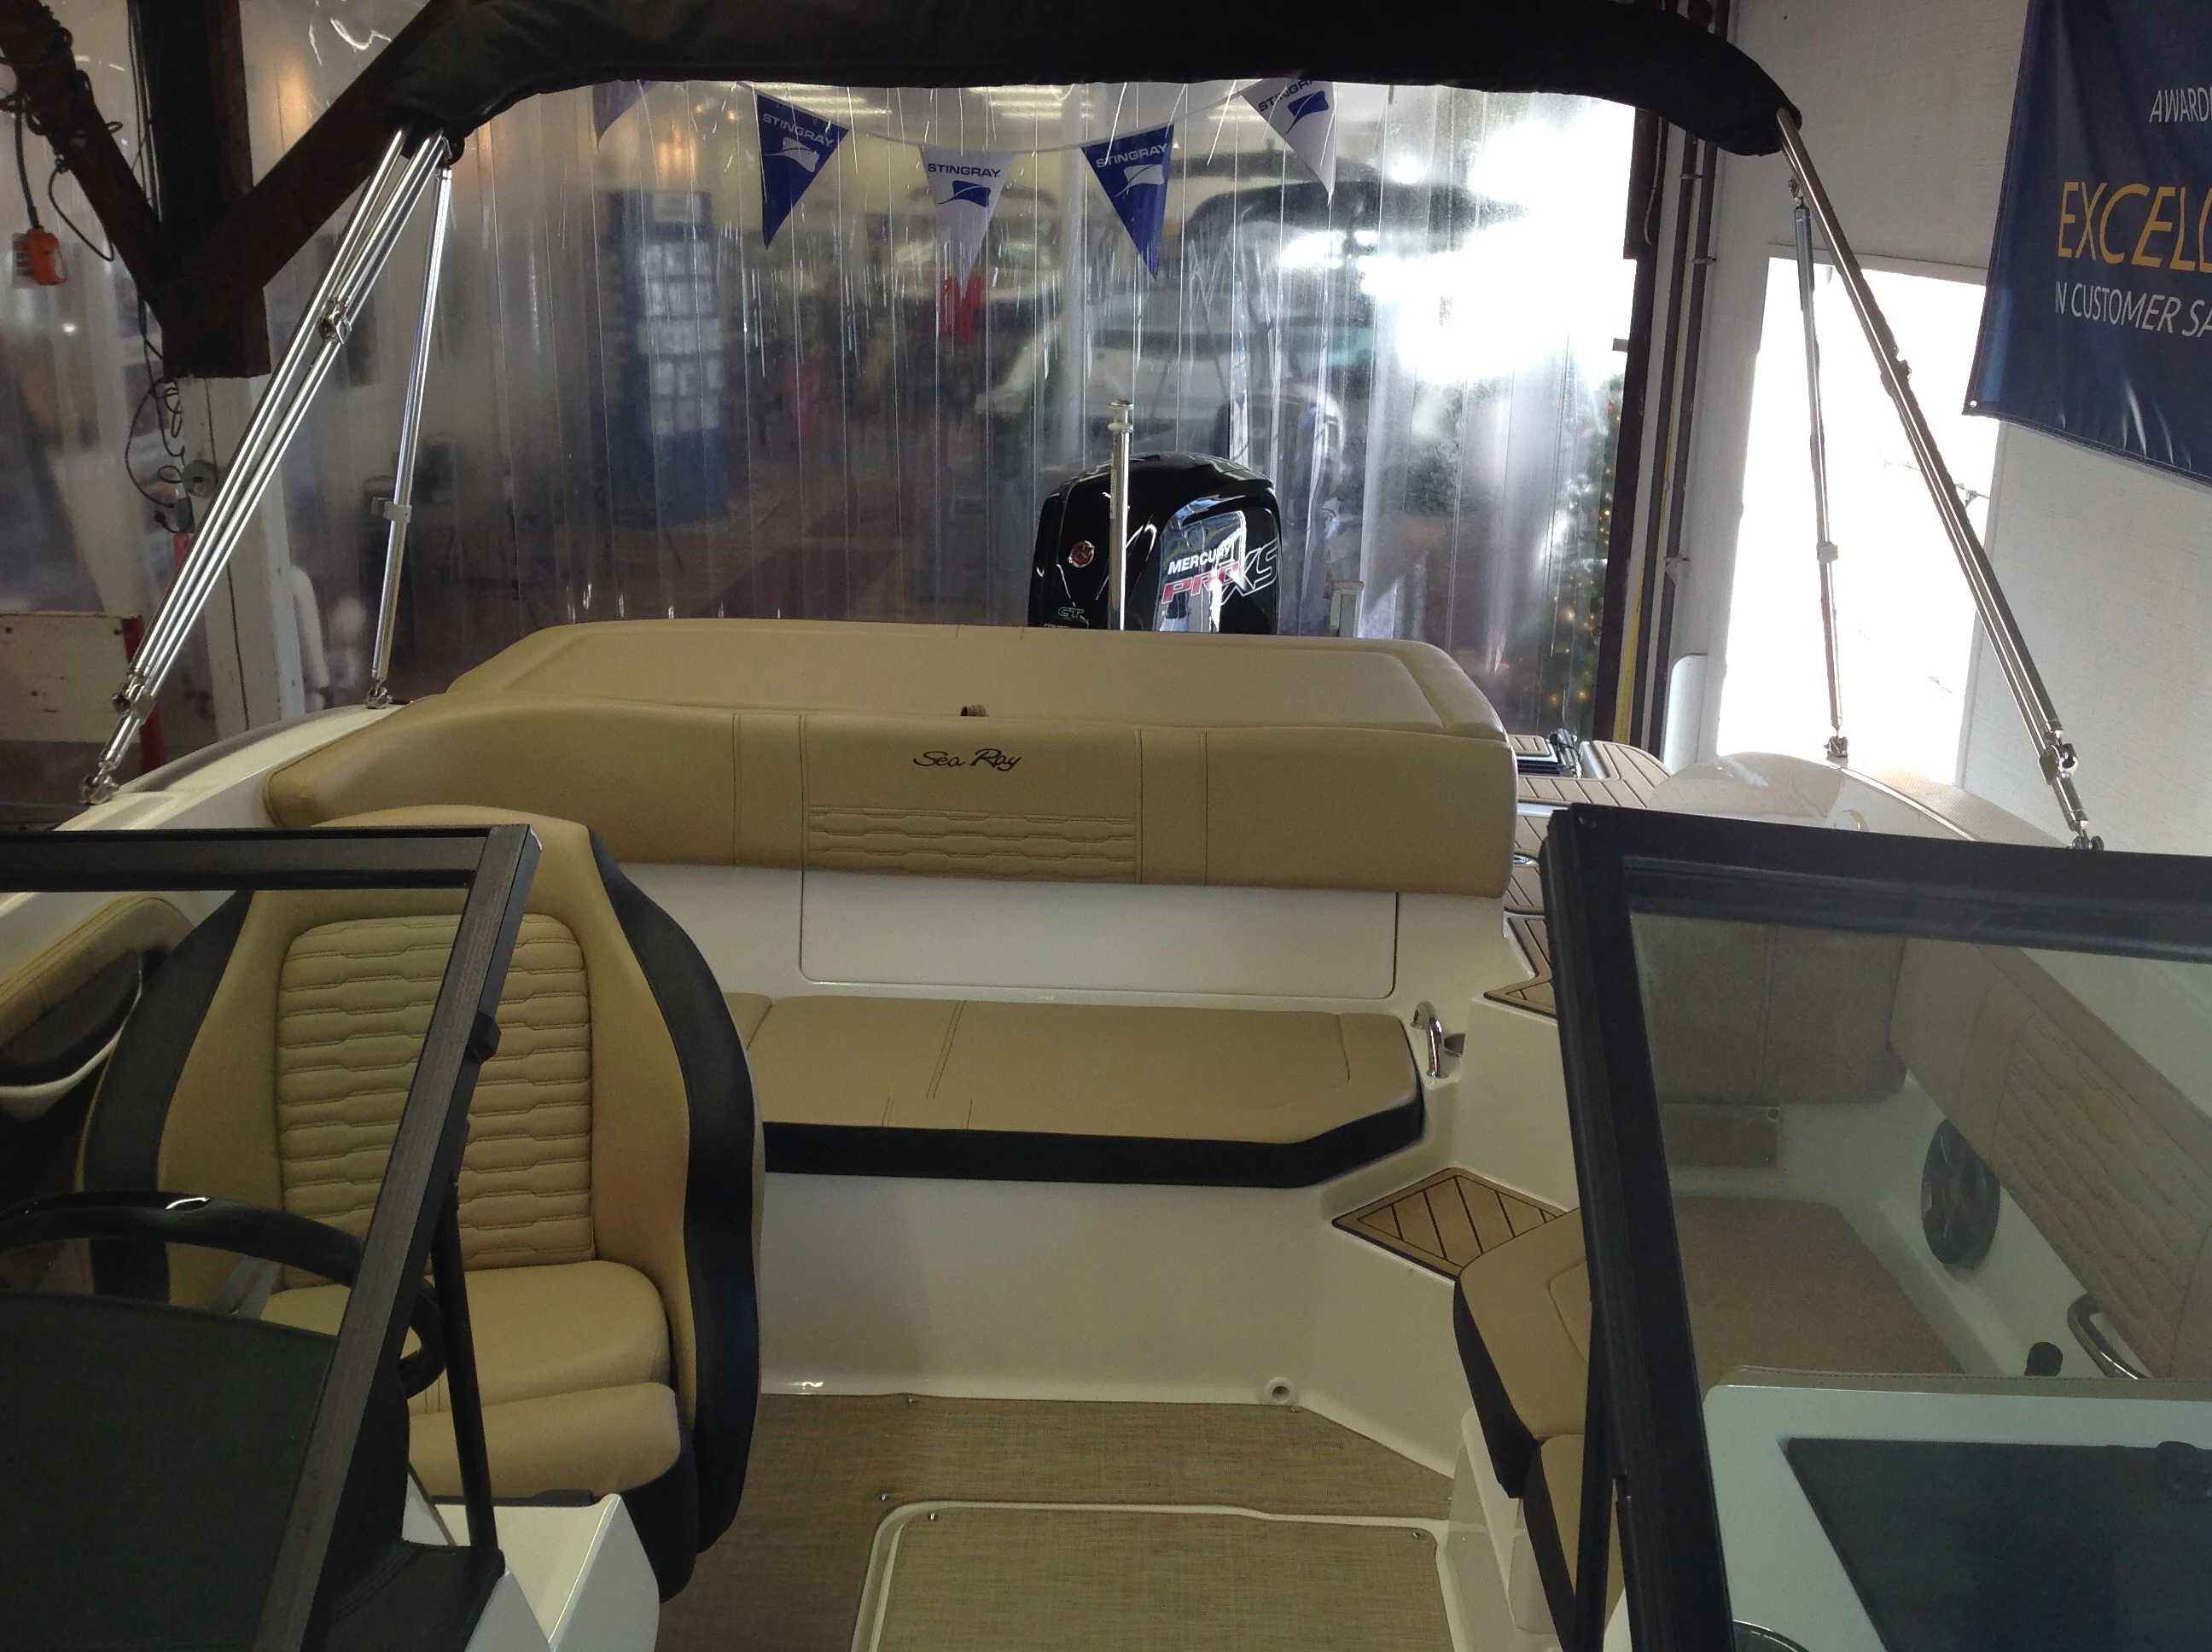 2021 Sea Ray boat for sale, model of the boat is 190 spxo & Image # 7 of 14